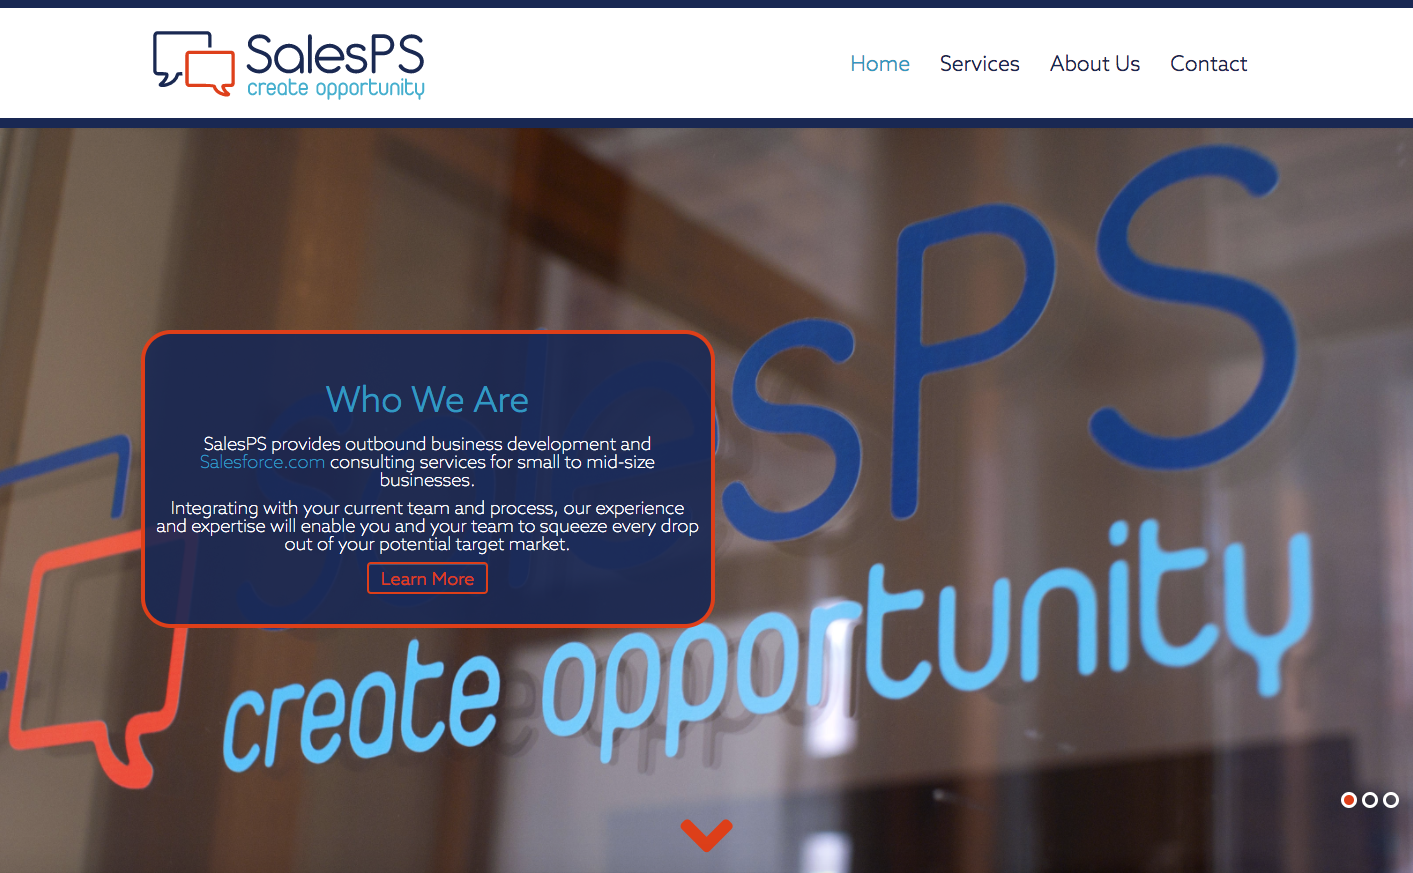 SalesPS website and rebranding